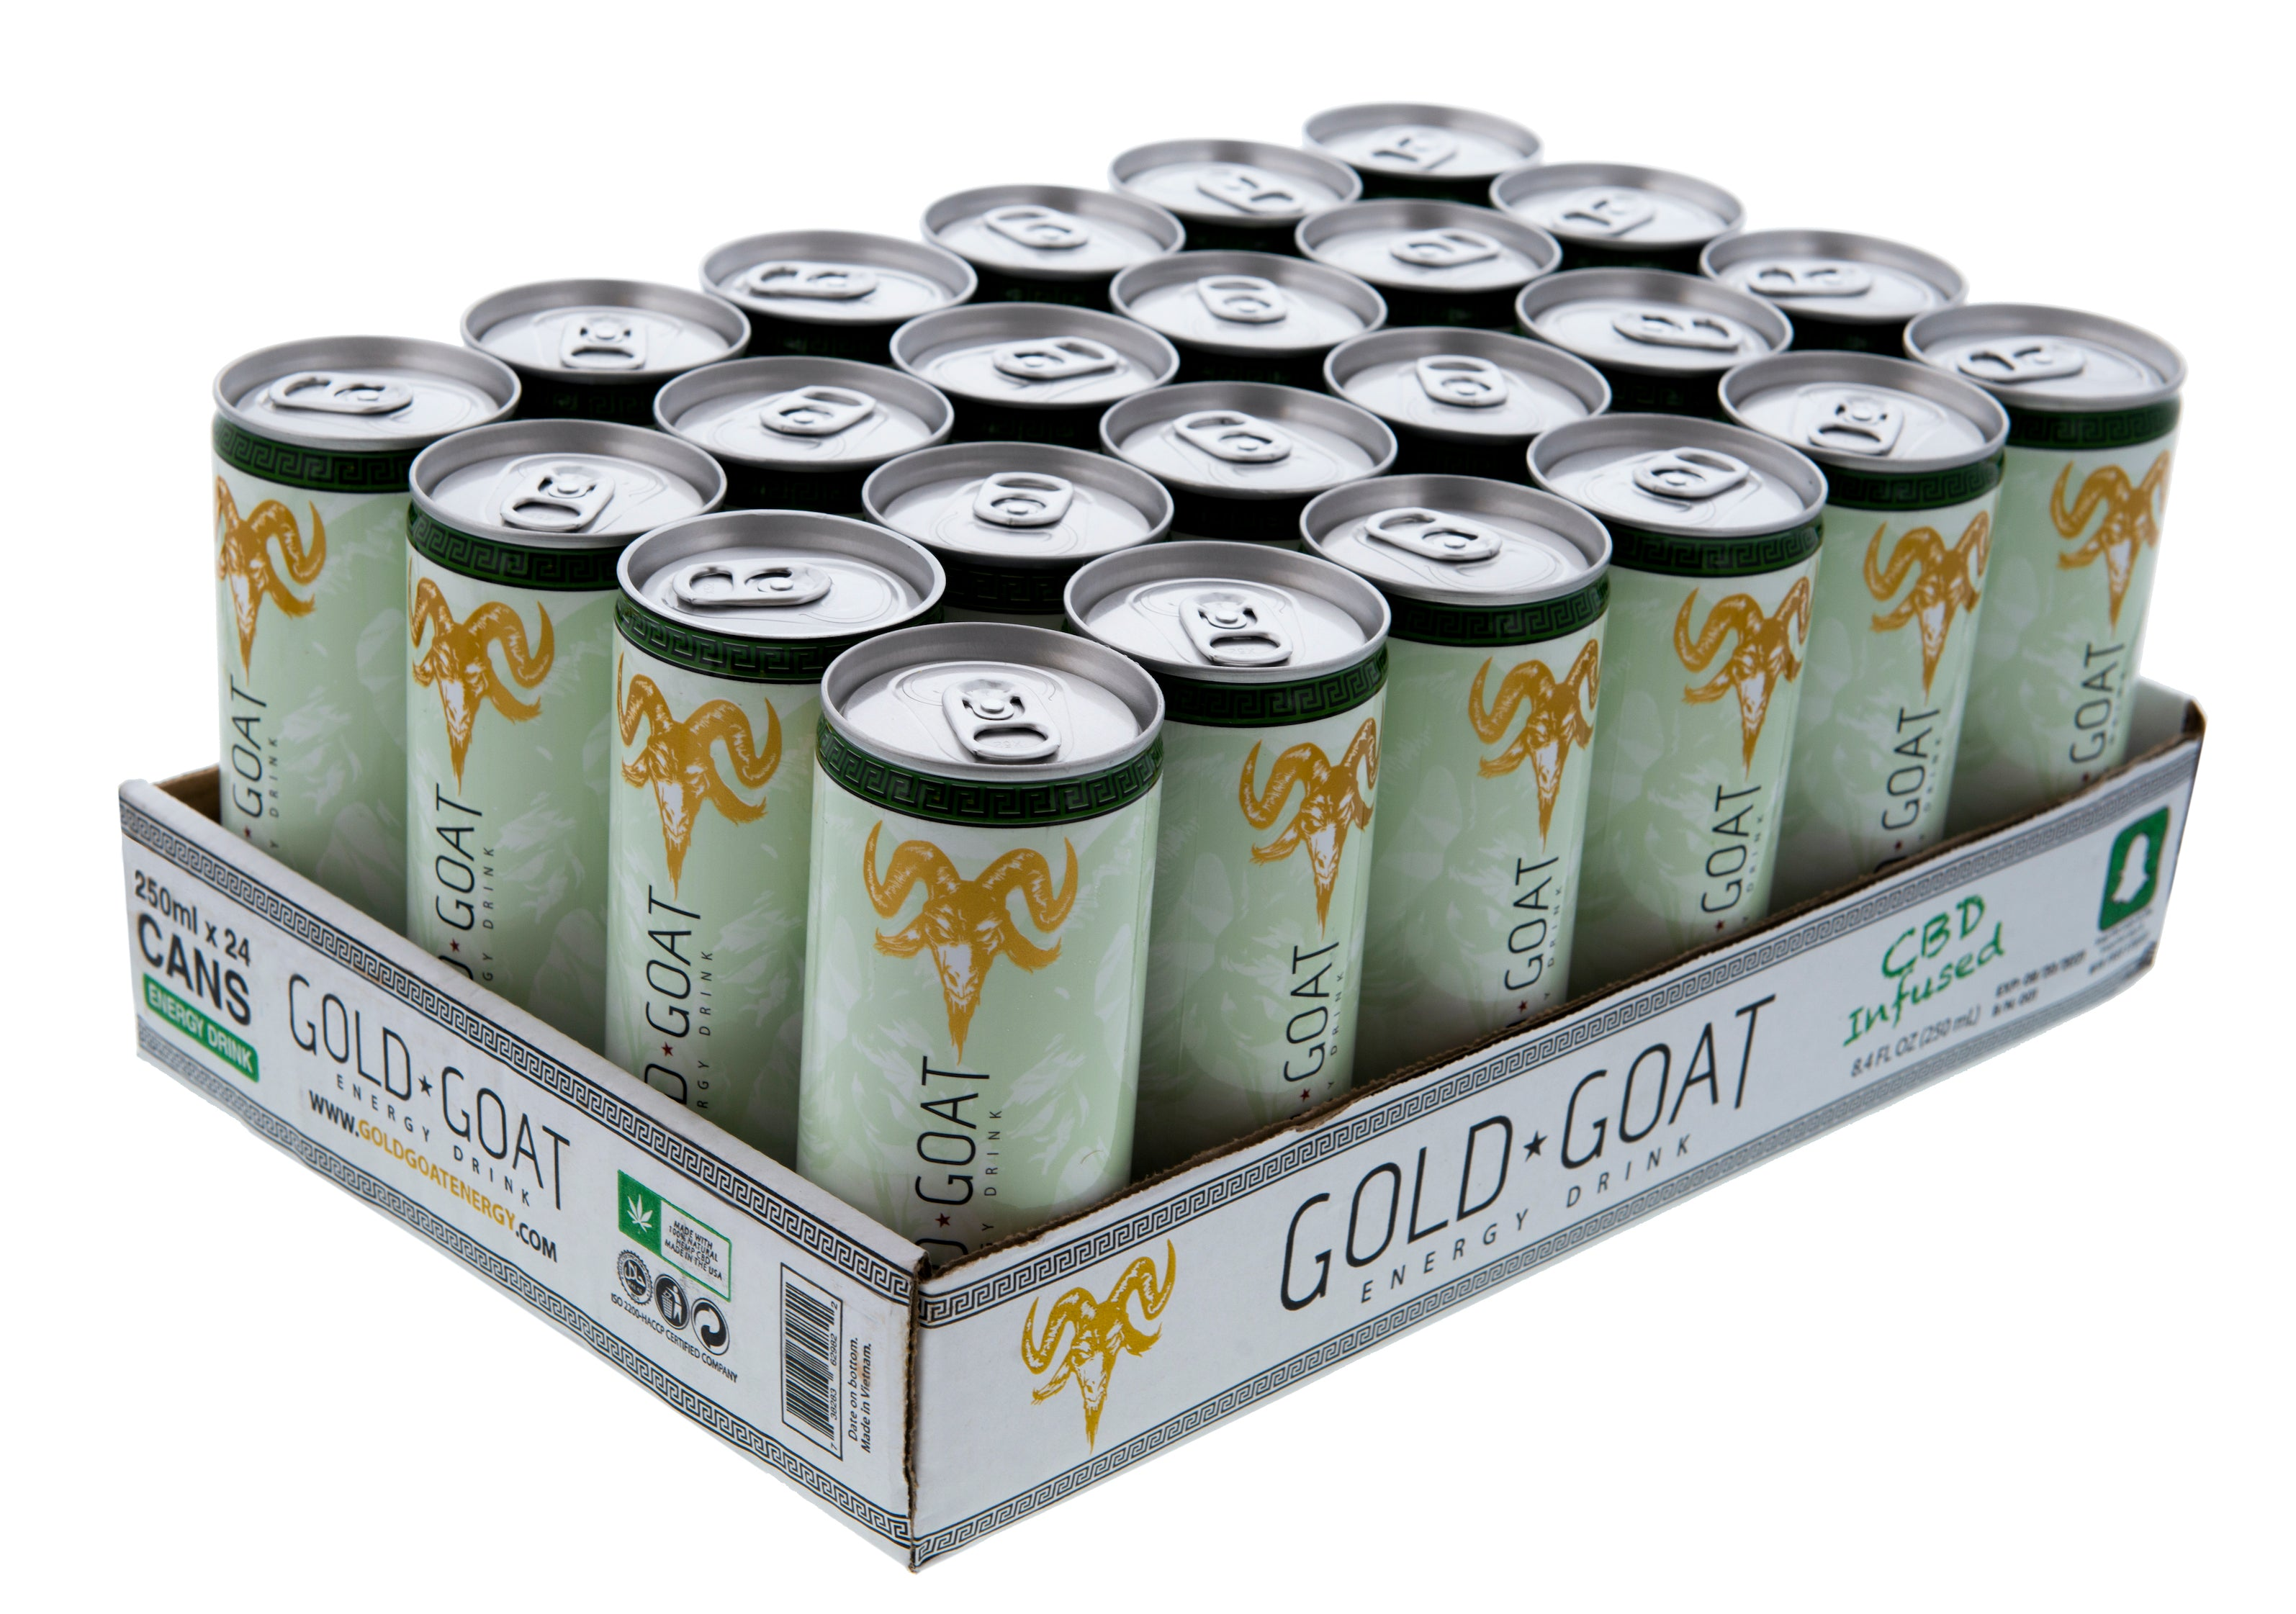 Gold Goat Energy CBD Energy Drink Case